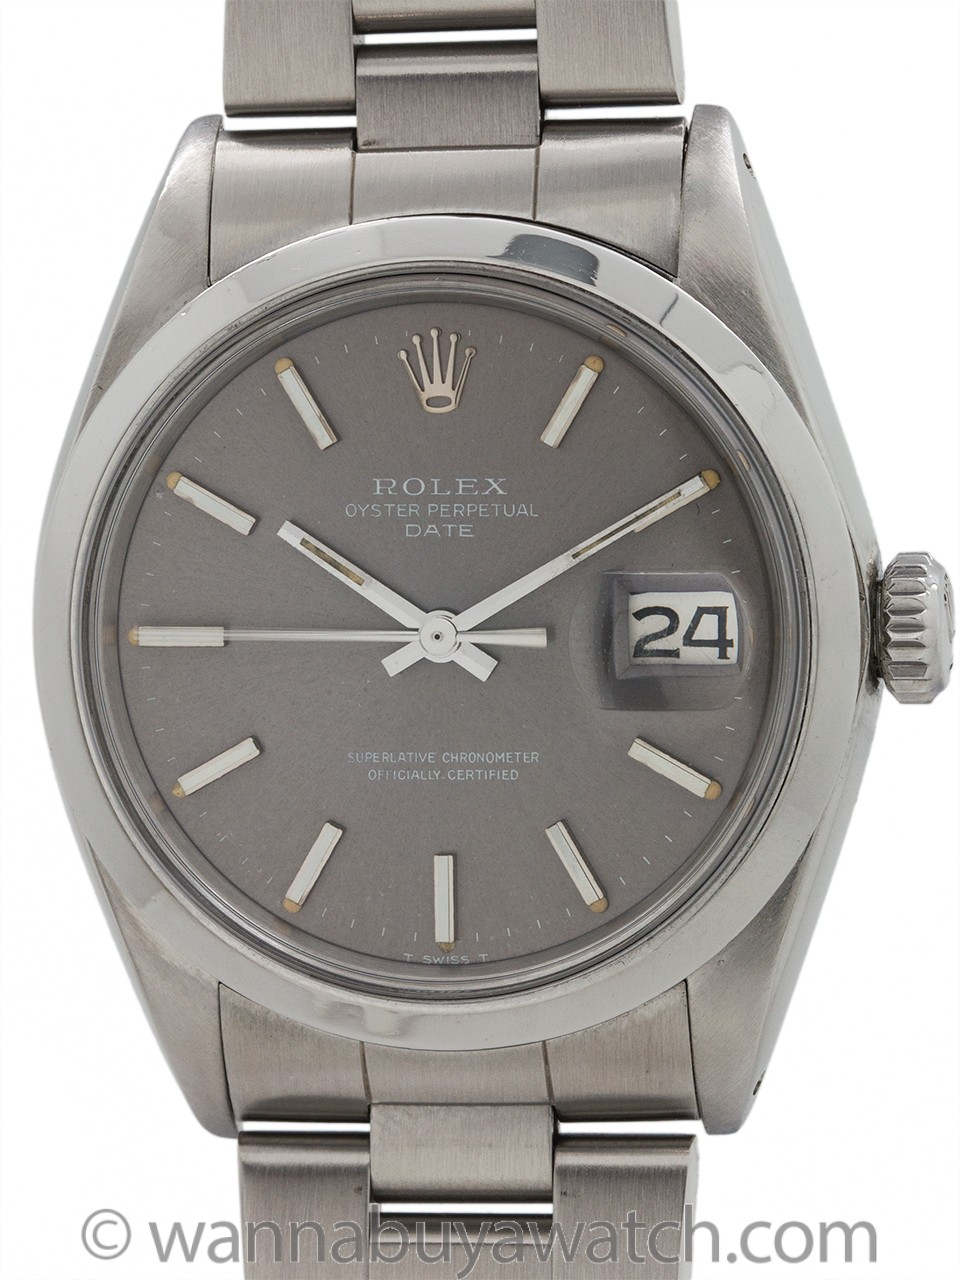 Rolex Oyster Perpetual Date ref 1500 Gray Dial circa 1969